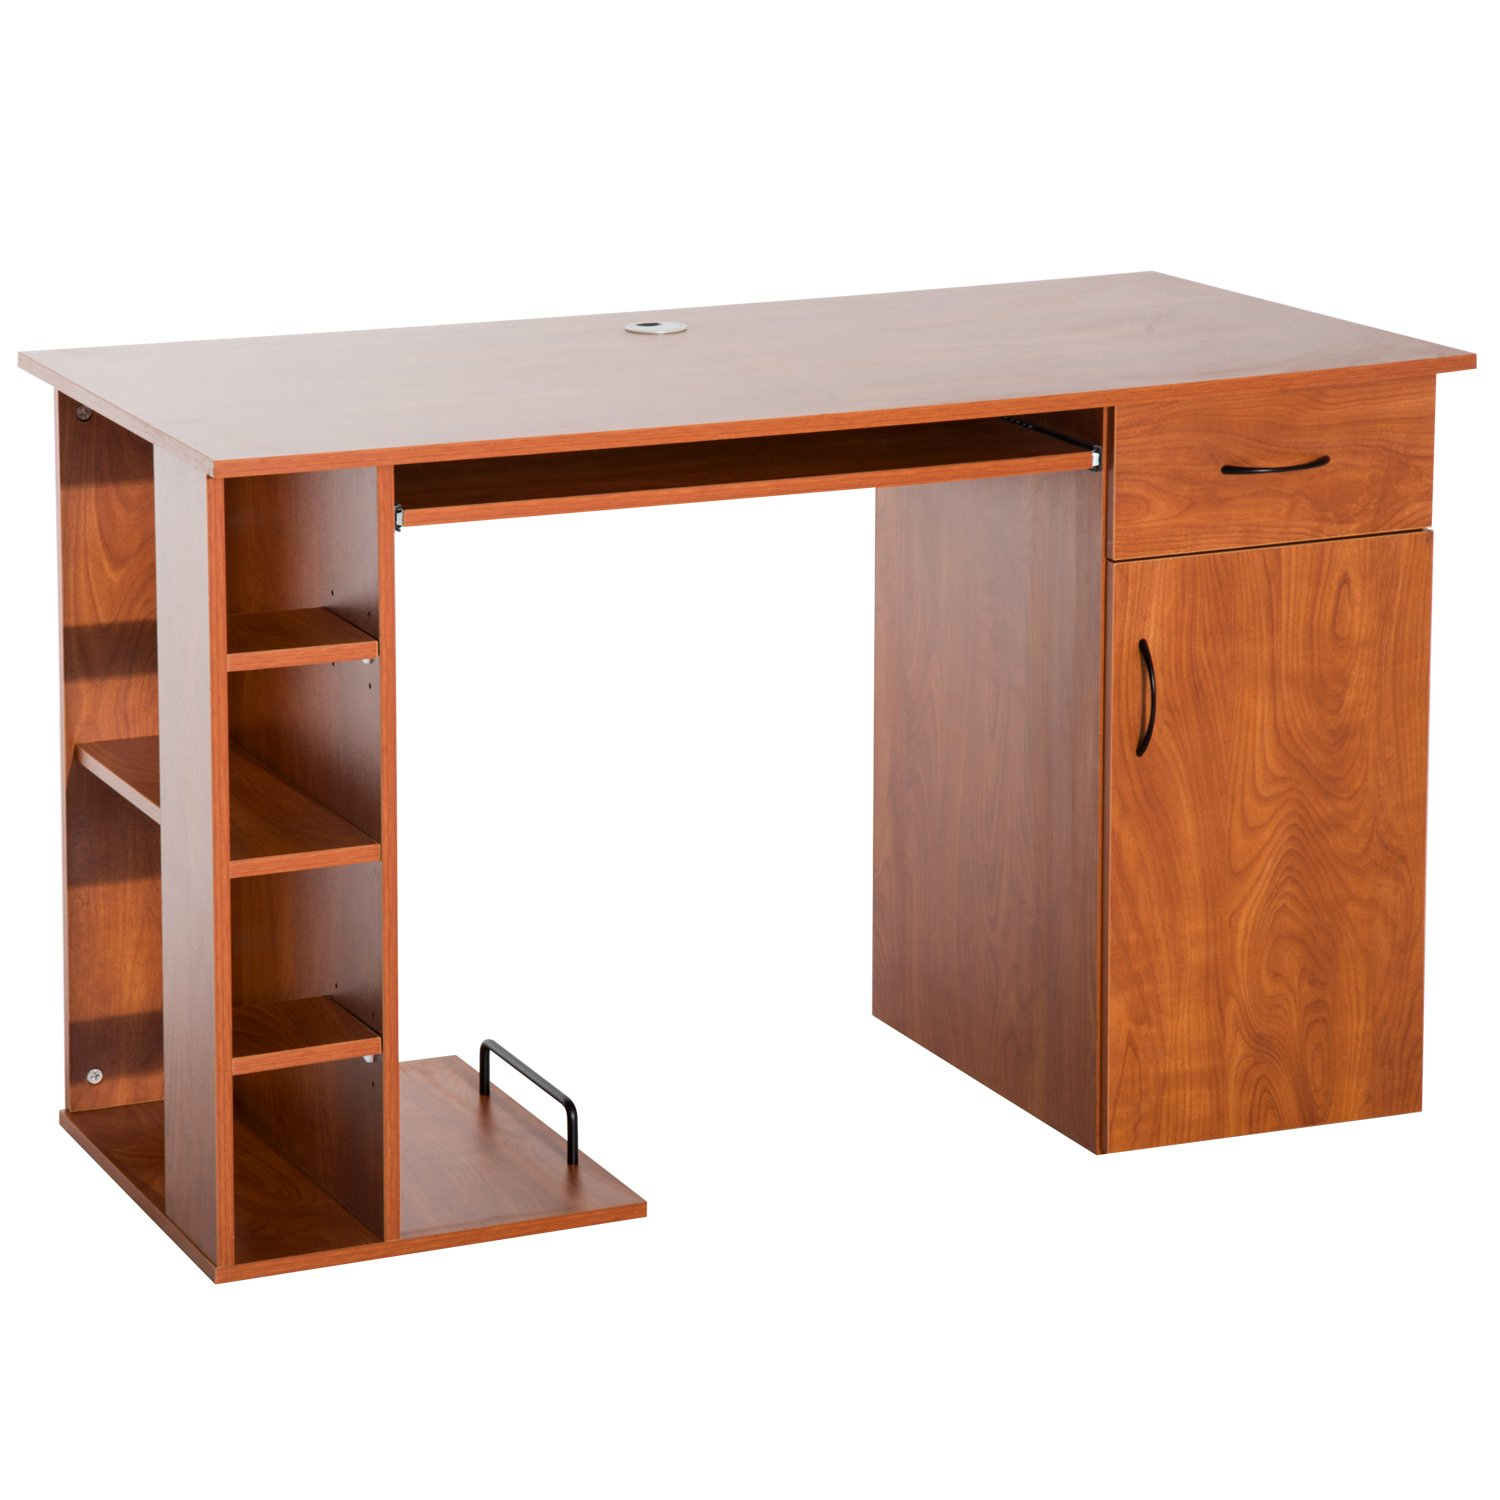 Amazon com homcom 47 compact wooden modern home office desk with storage shelves and cabinet brown golden oak kitchen dining